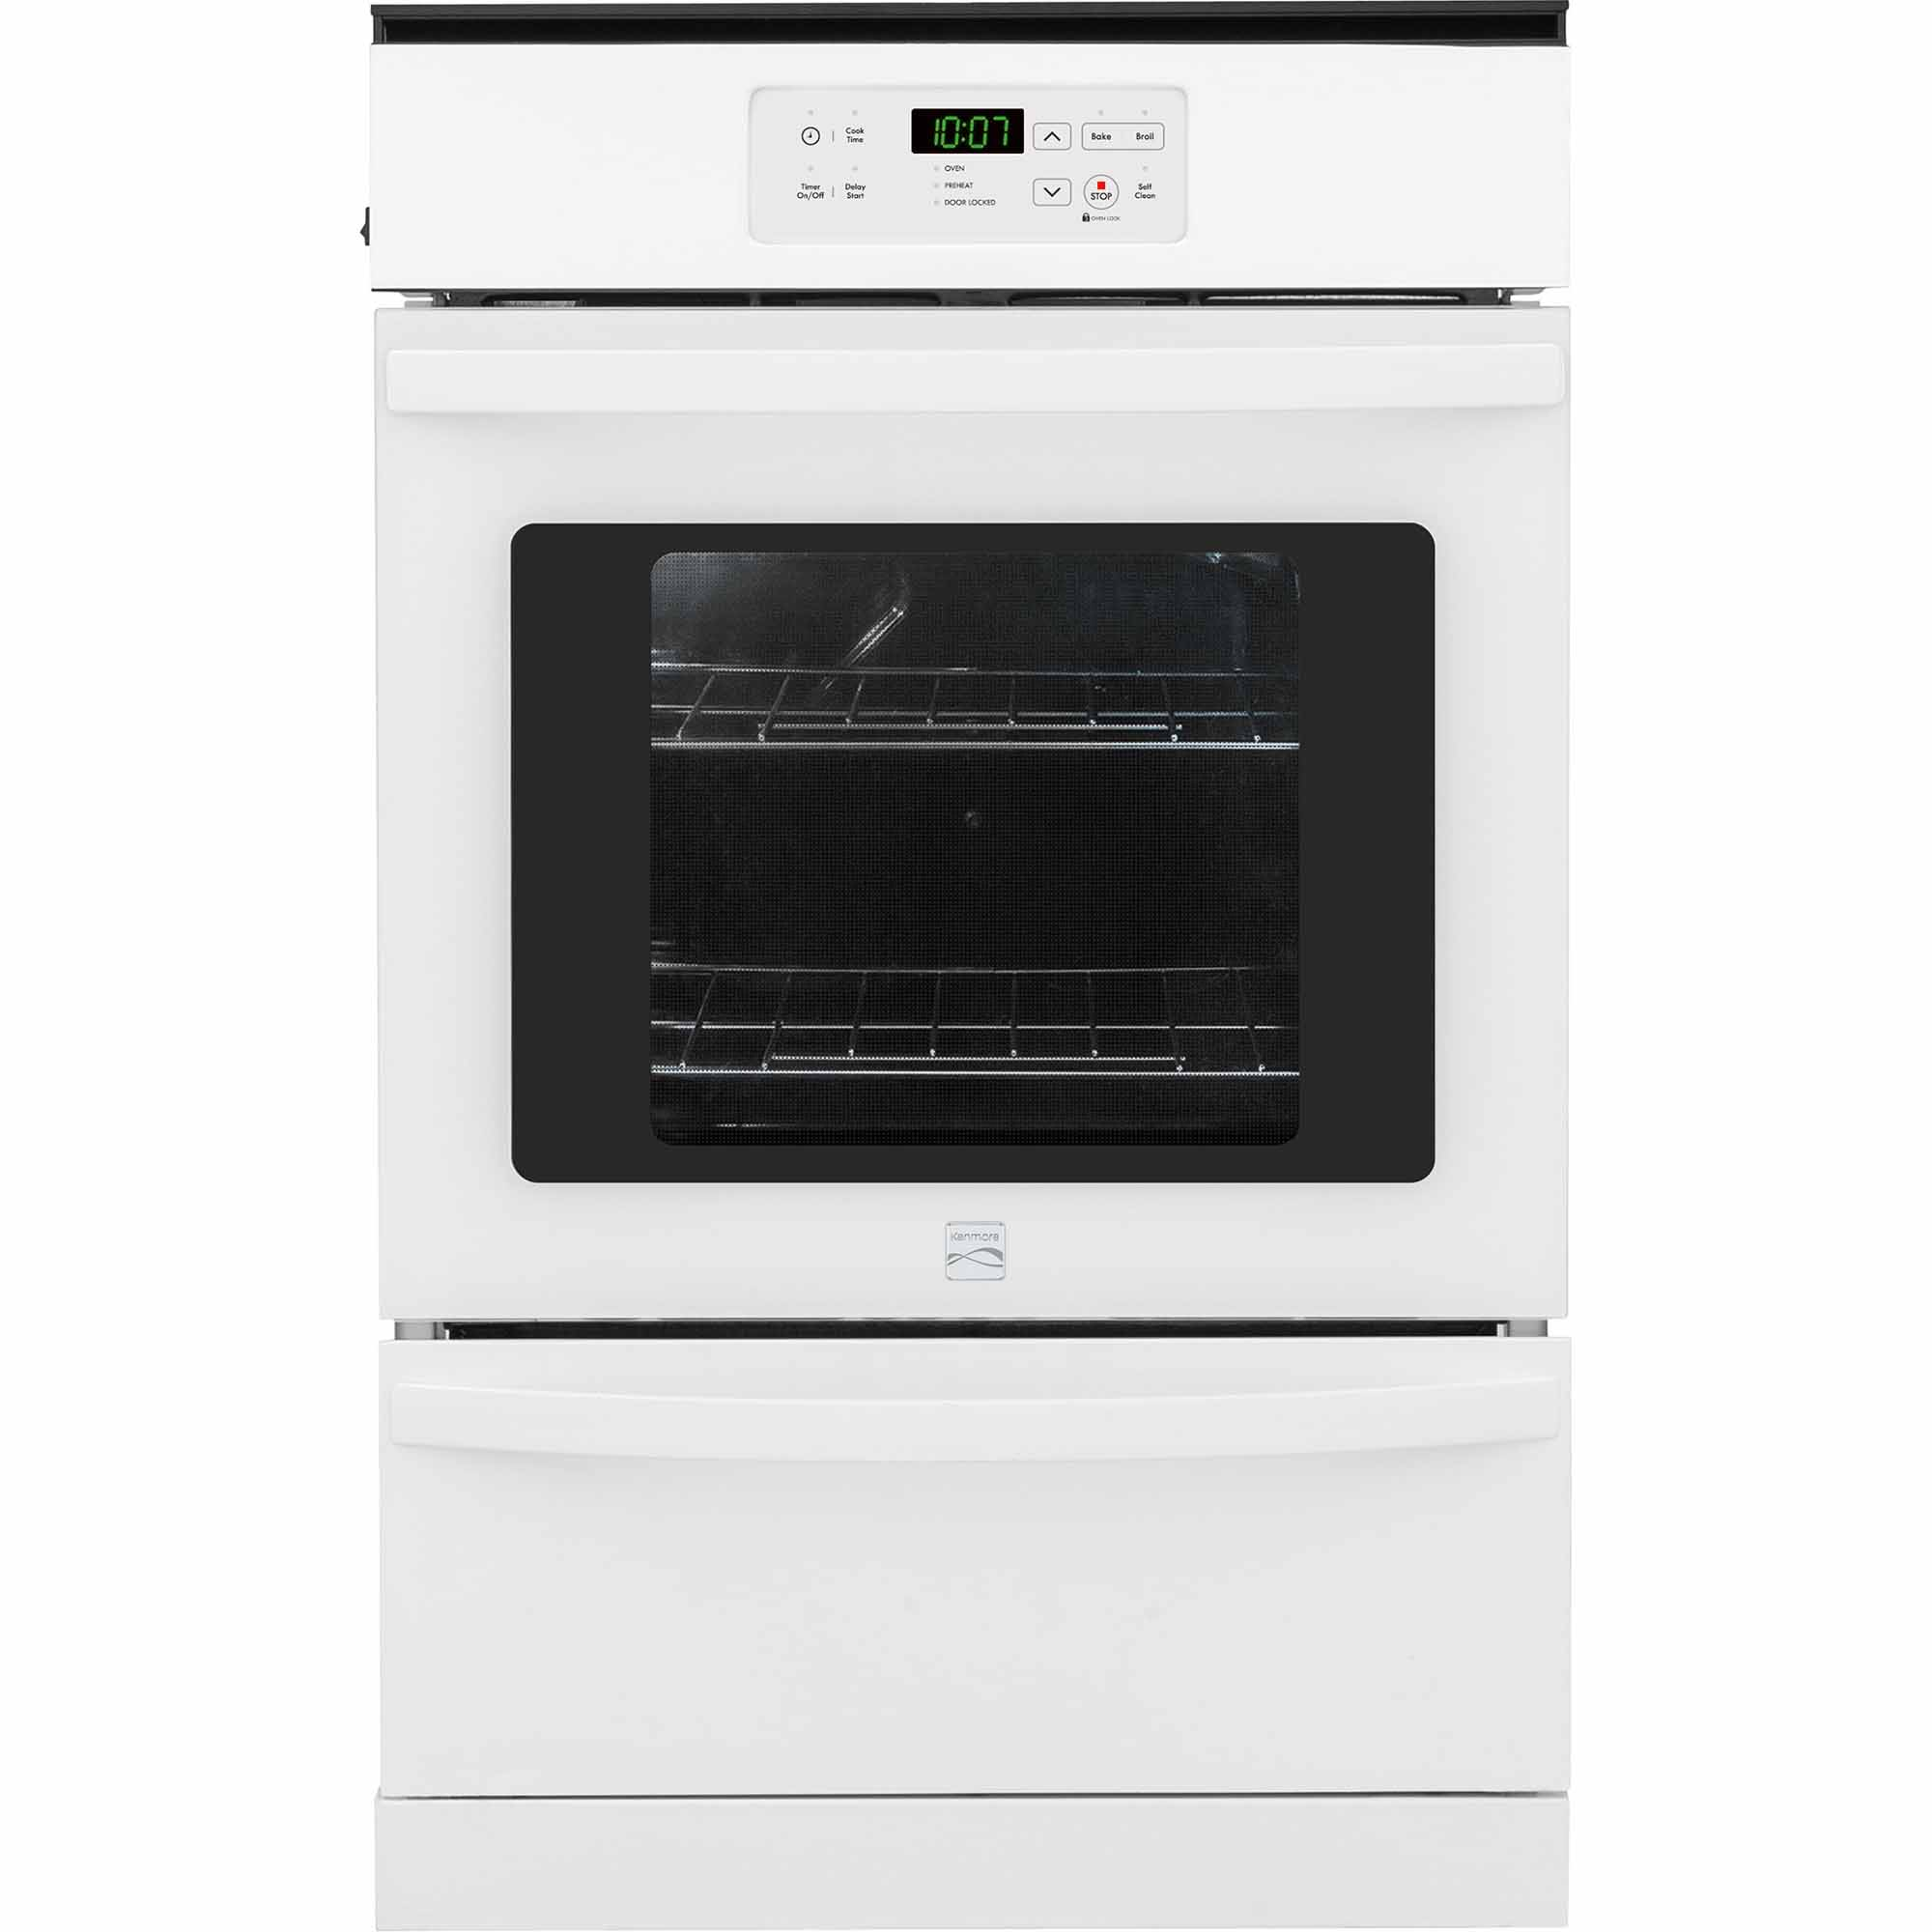 Kenmore 40302 24 Gas Wall Oven - White